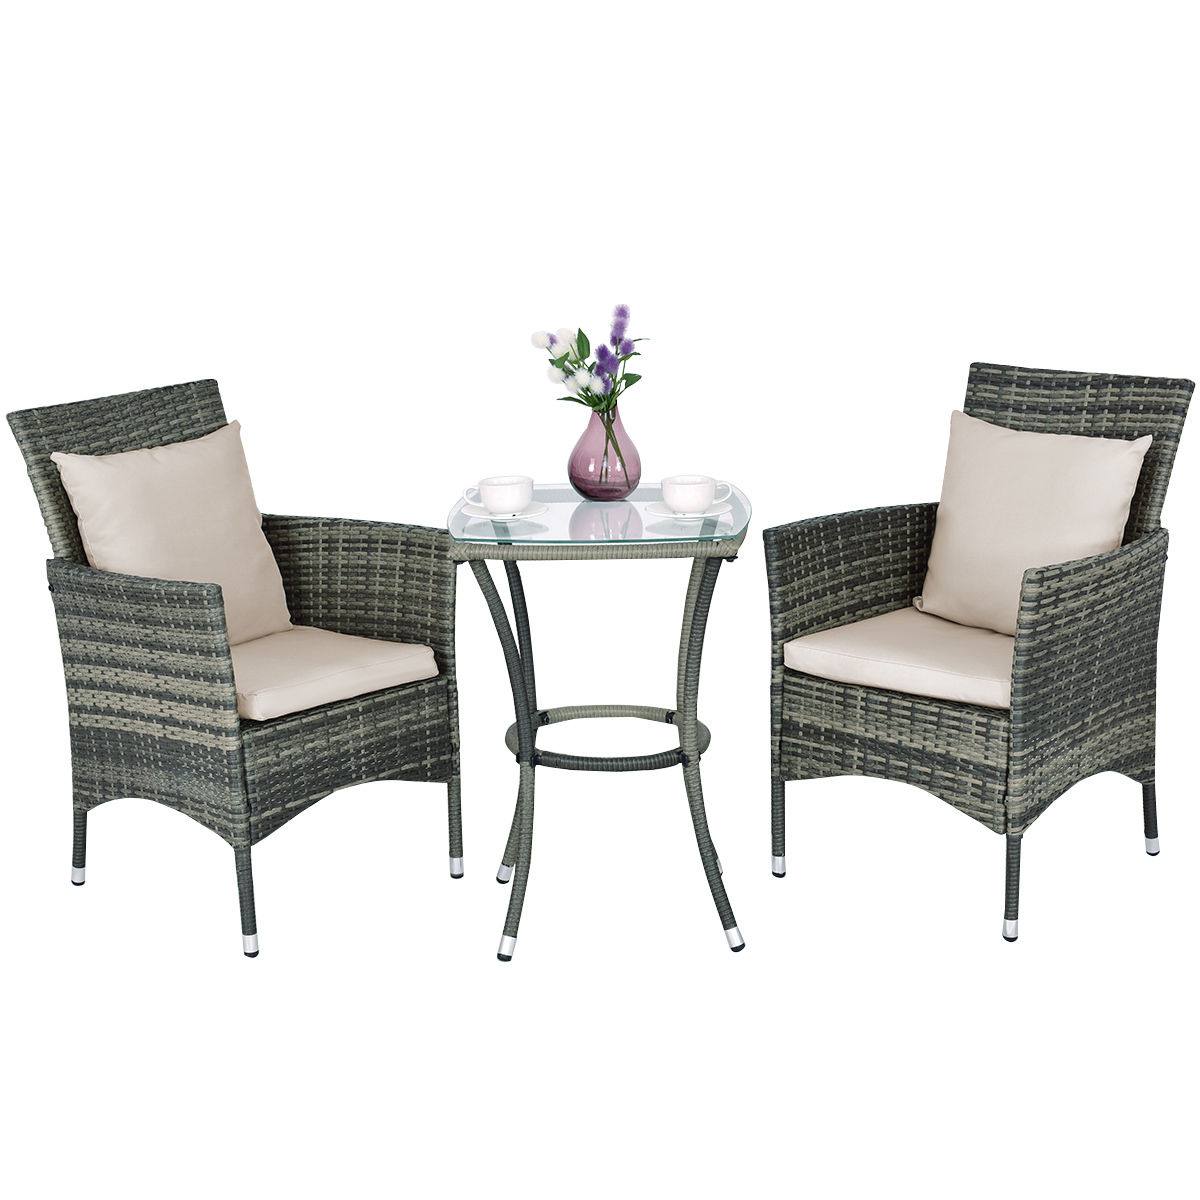 Goplus 3PCS Patio Rattan Furniture Set Chairs & Table Garden Coffee by Costway